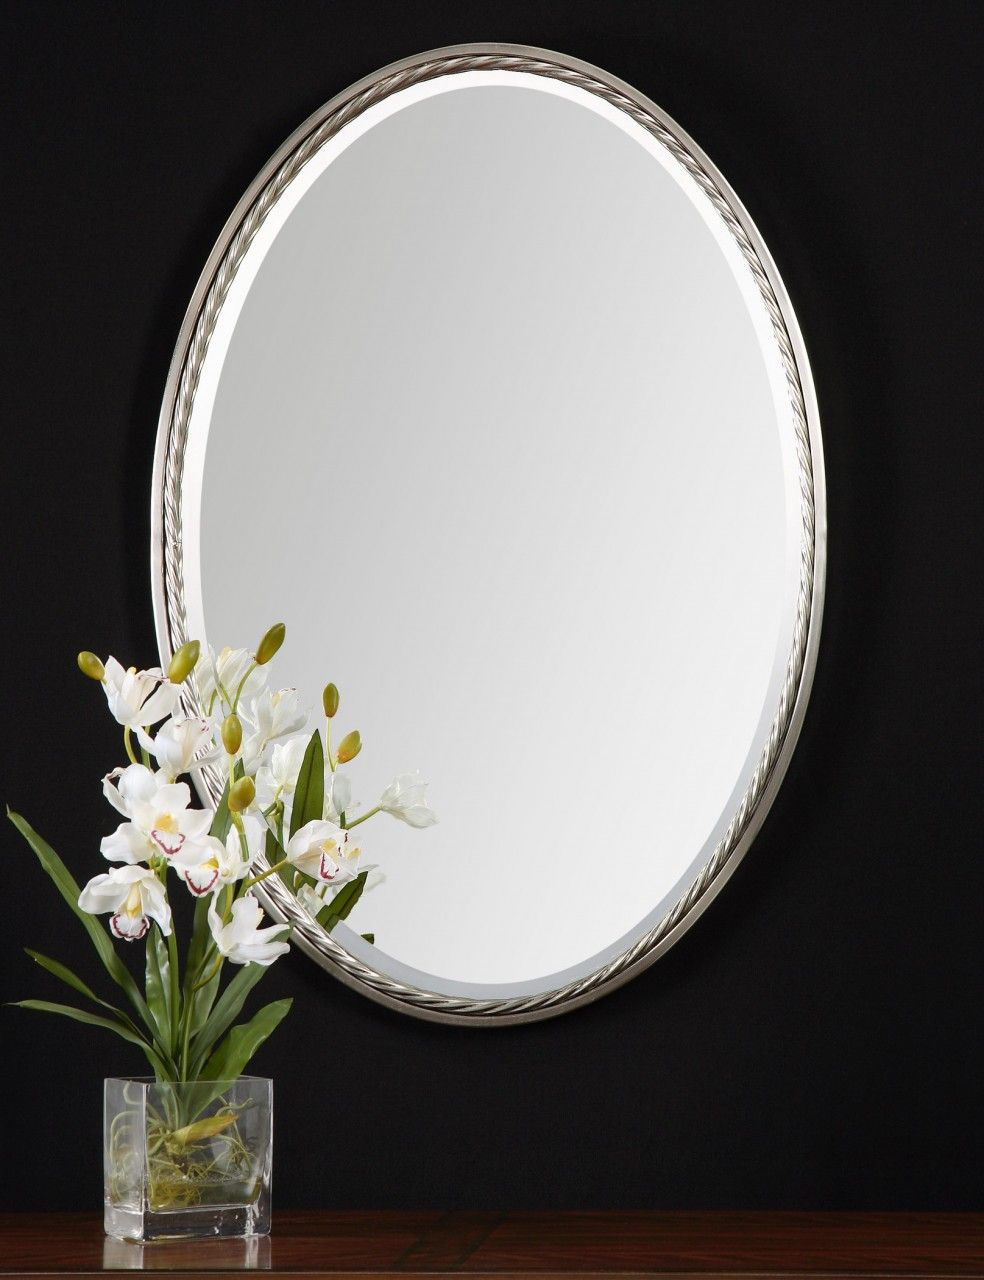 High Quality Bathroom: Small Oval Bathroom Mirror With New Decorative Design From Good  Looking Oval Bathroom Mirrors